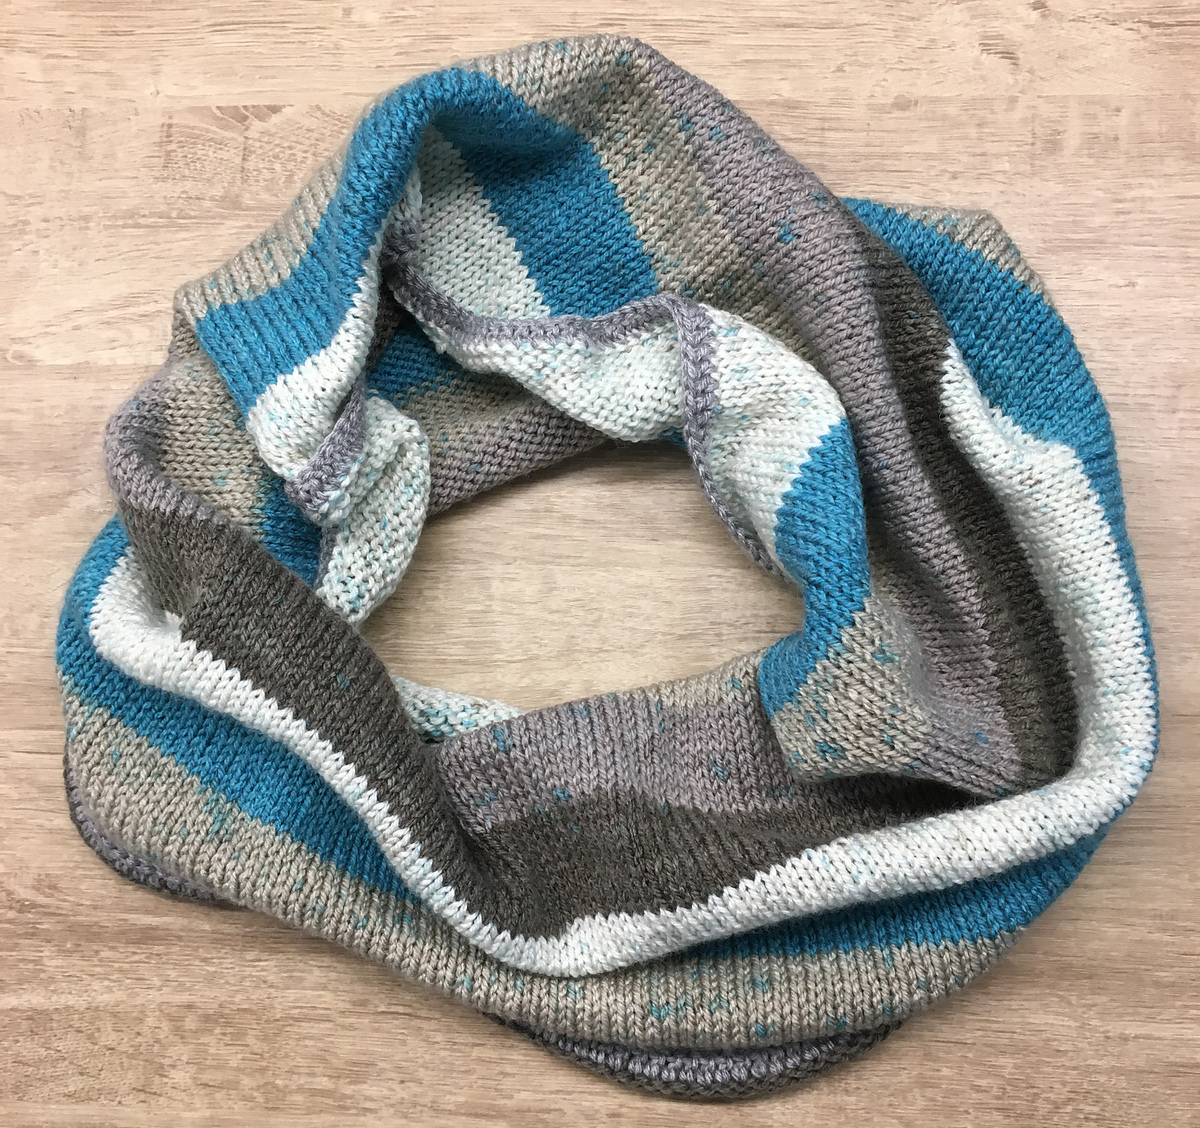 learn to knit 2